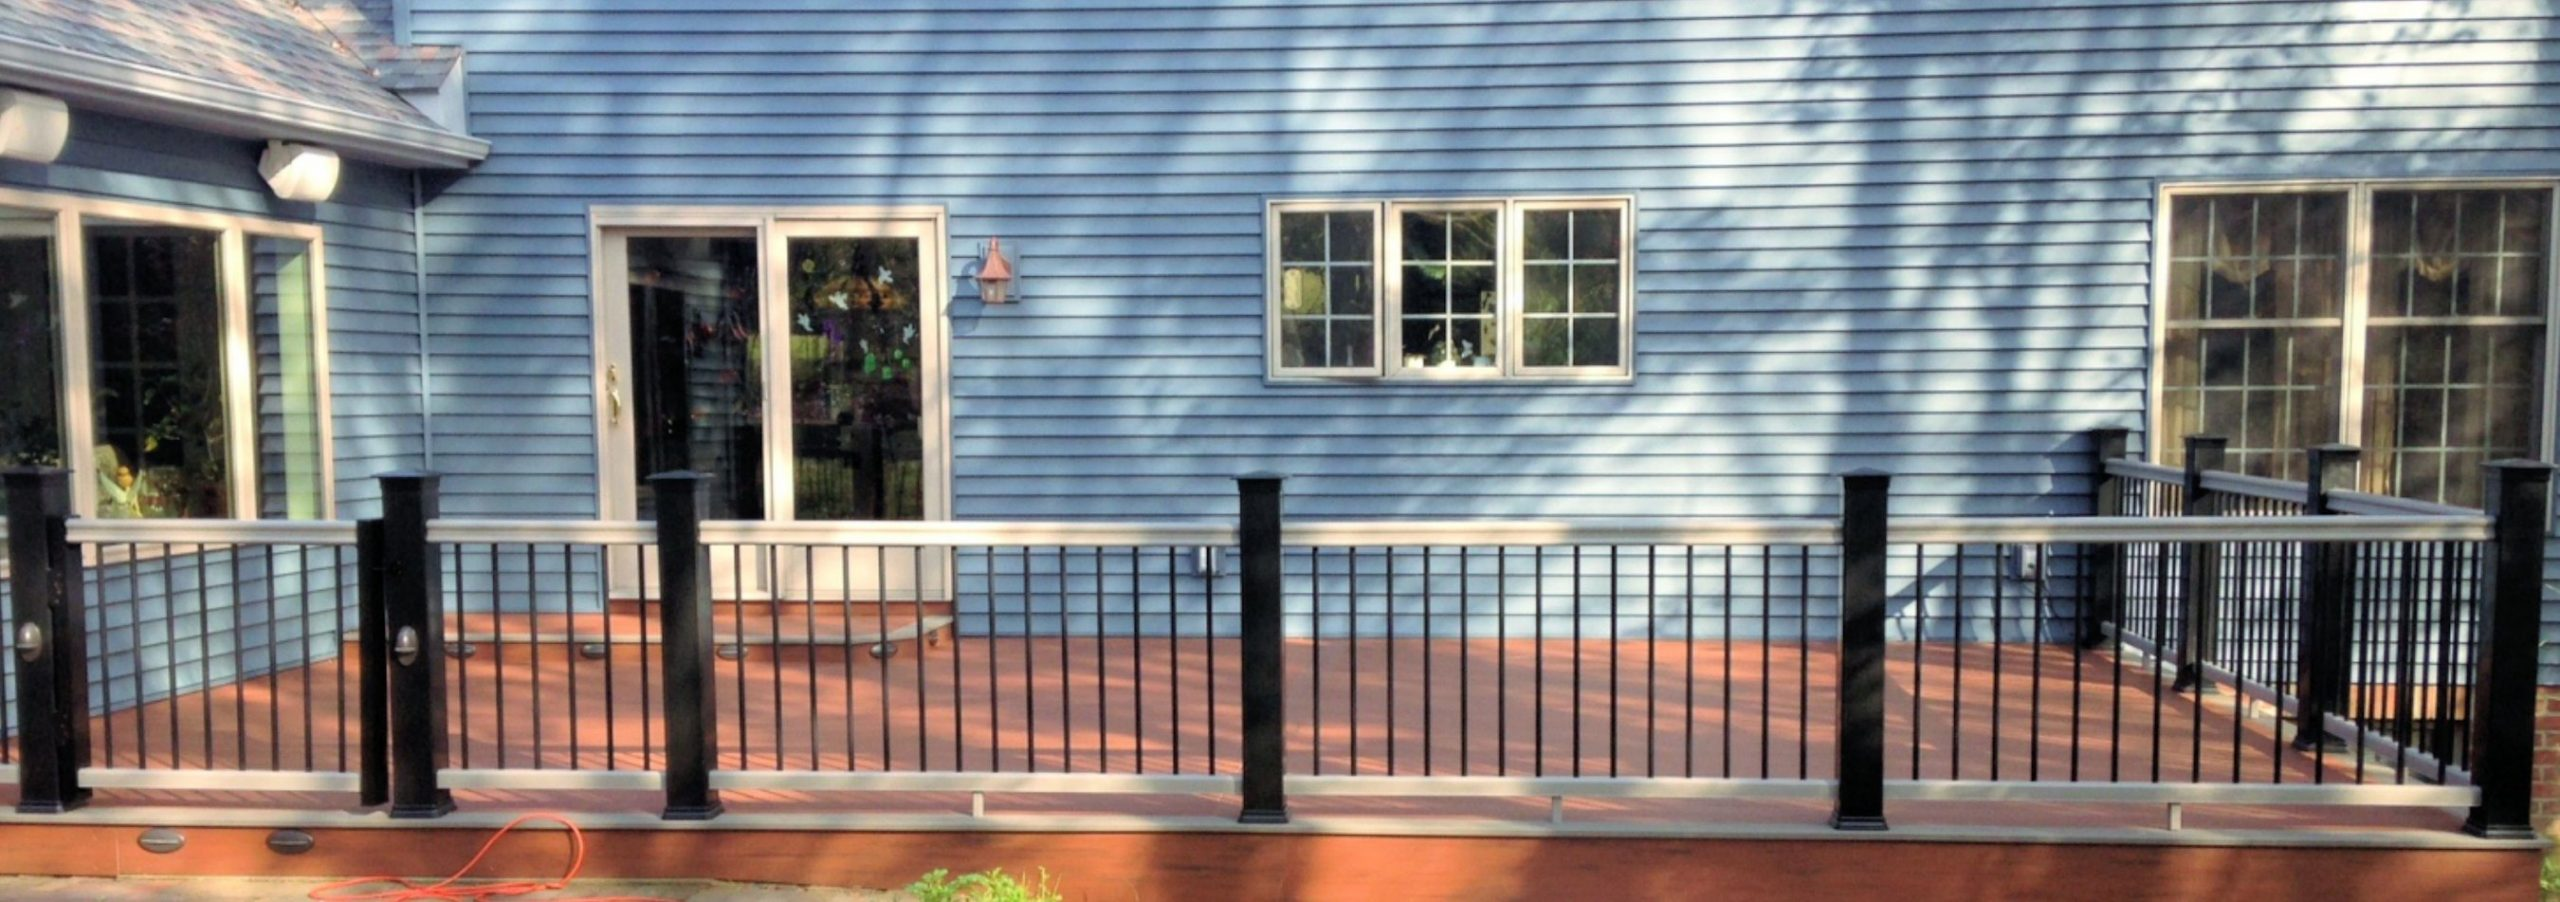 TimberTech-Deck-with-Radiance-Railing-LED-Lights-Vinyl-Siding-Danville-Pennsylvania-B